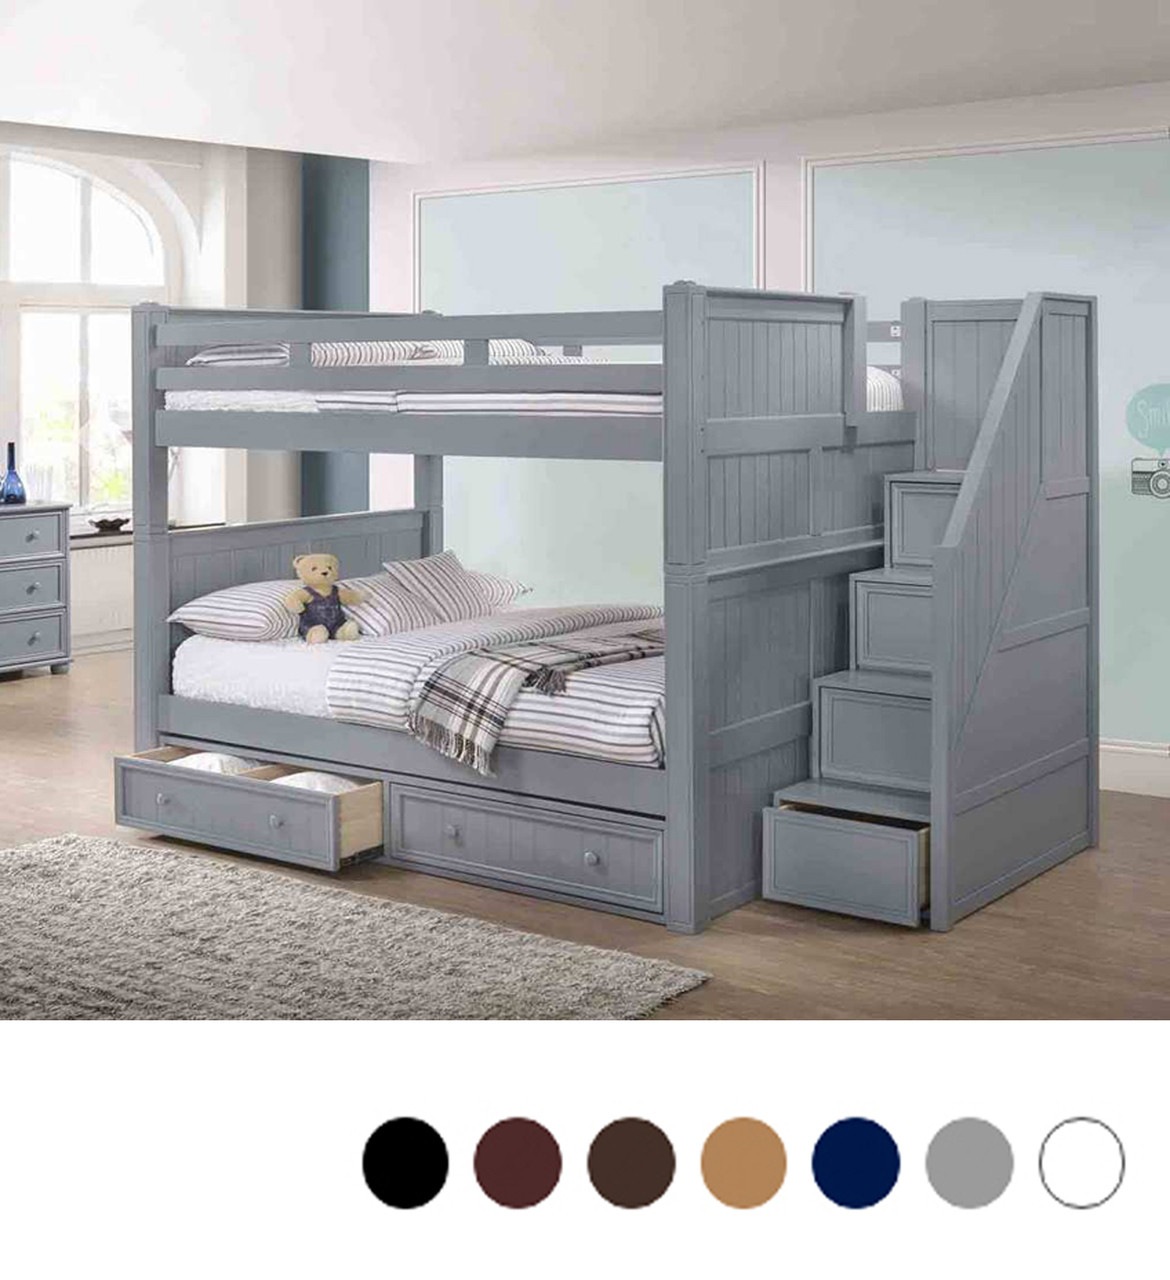 3a1449e6cb169 Dillon Full Over Full Bunk Bed with Stairs Drawers. Hover to zoom